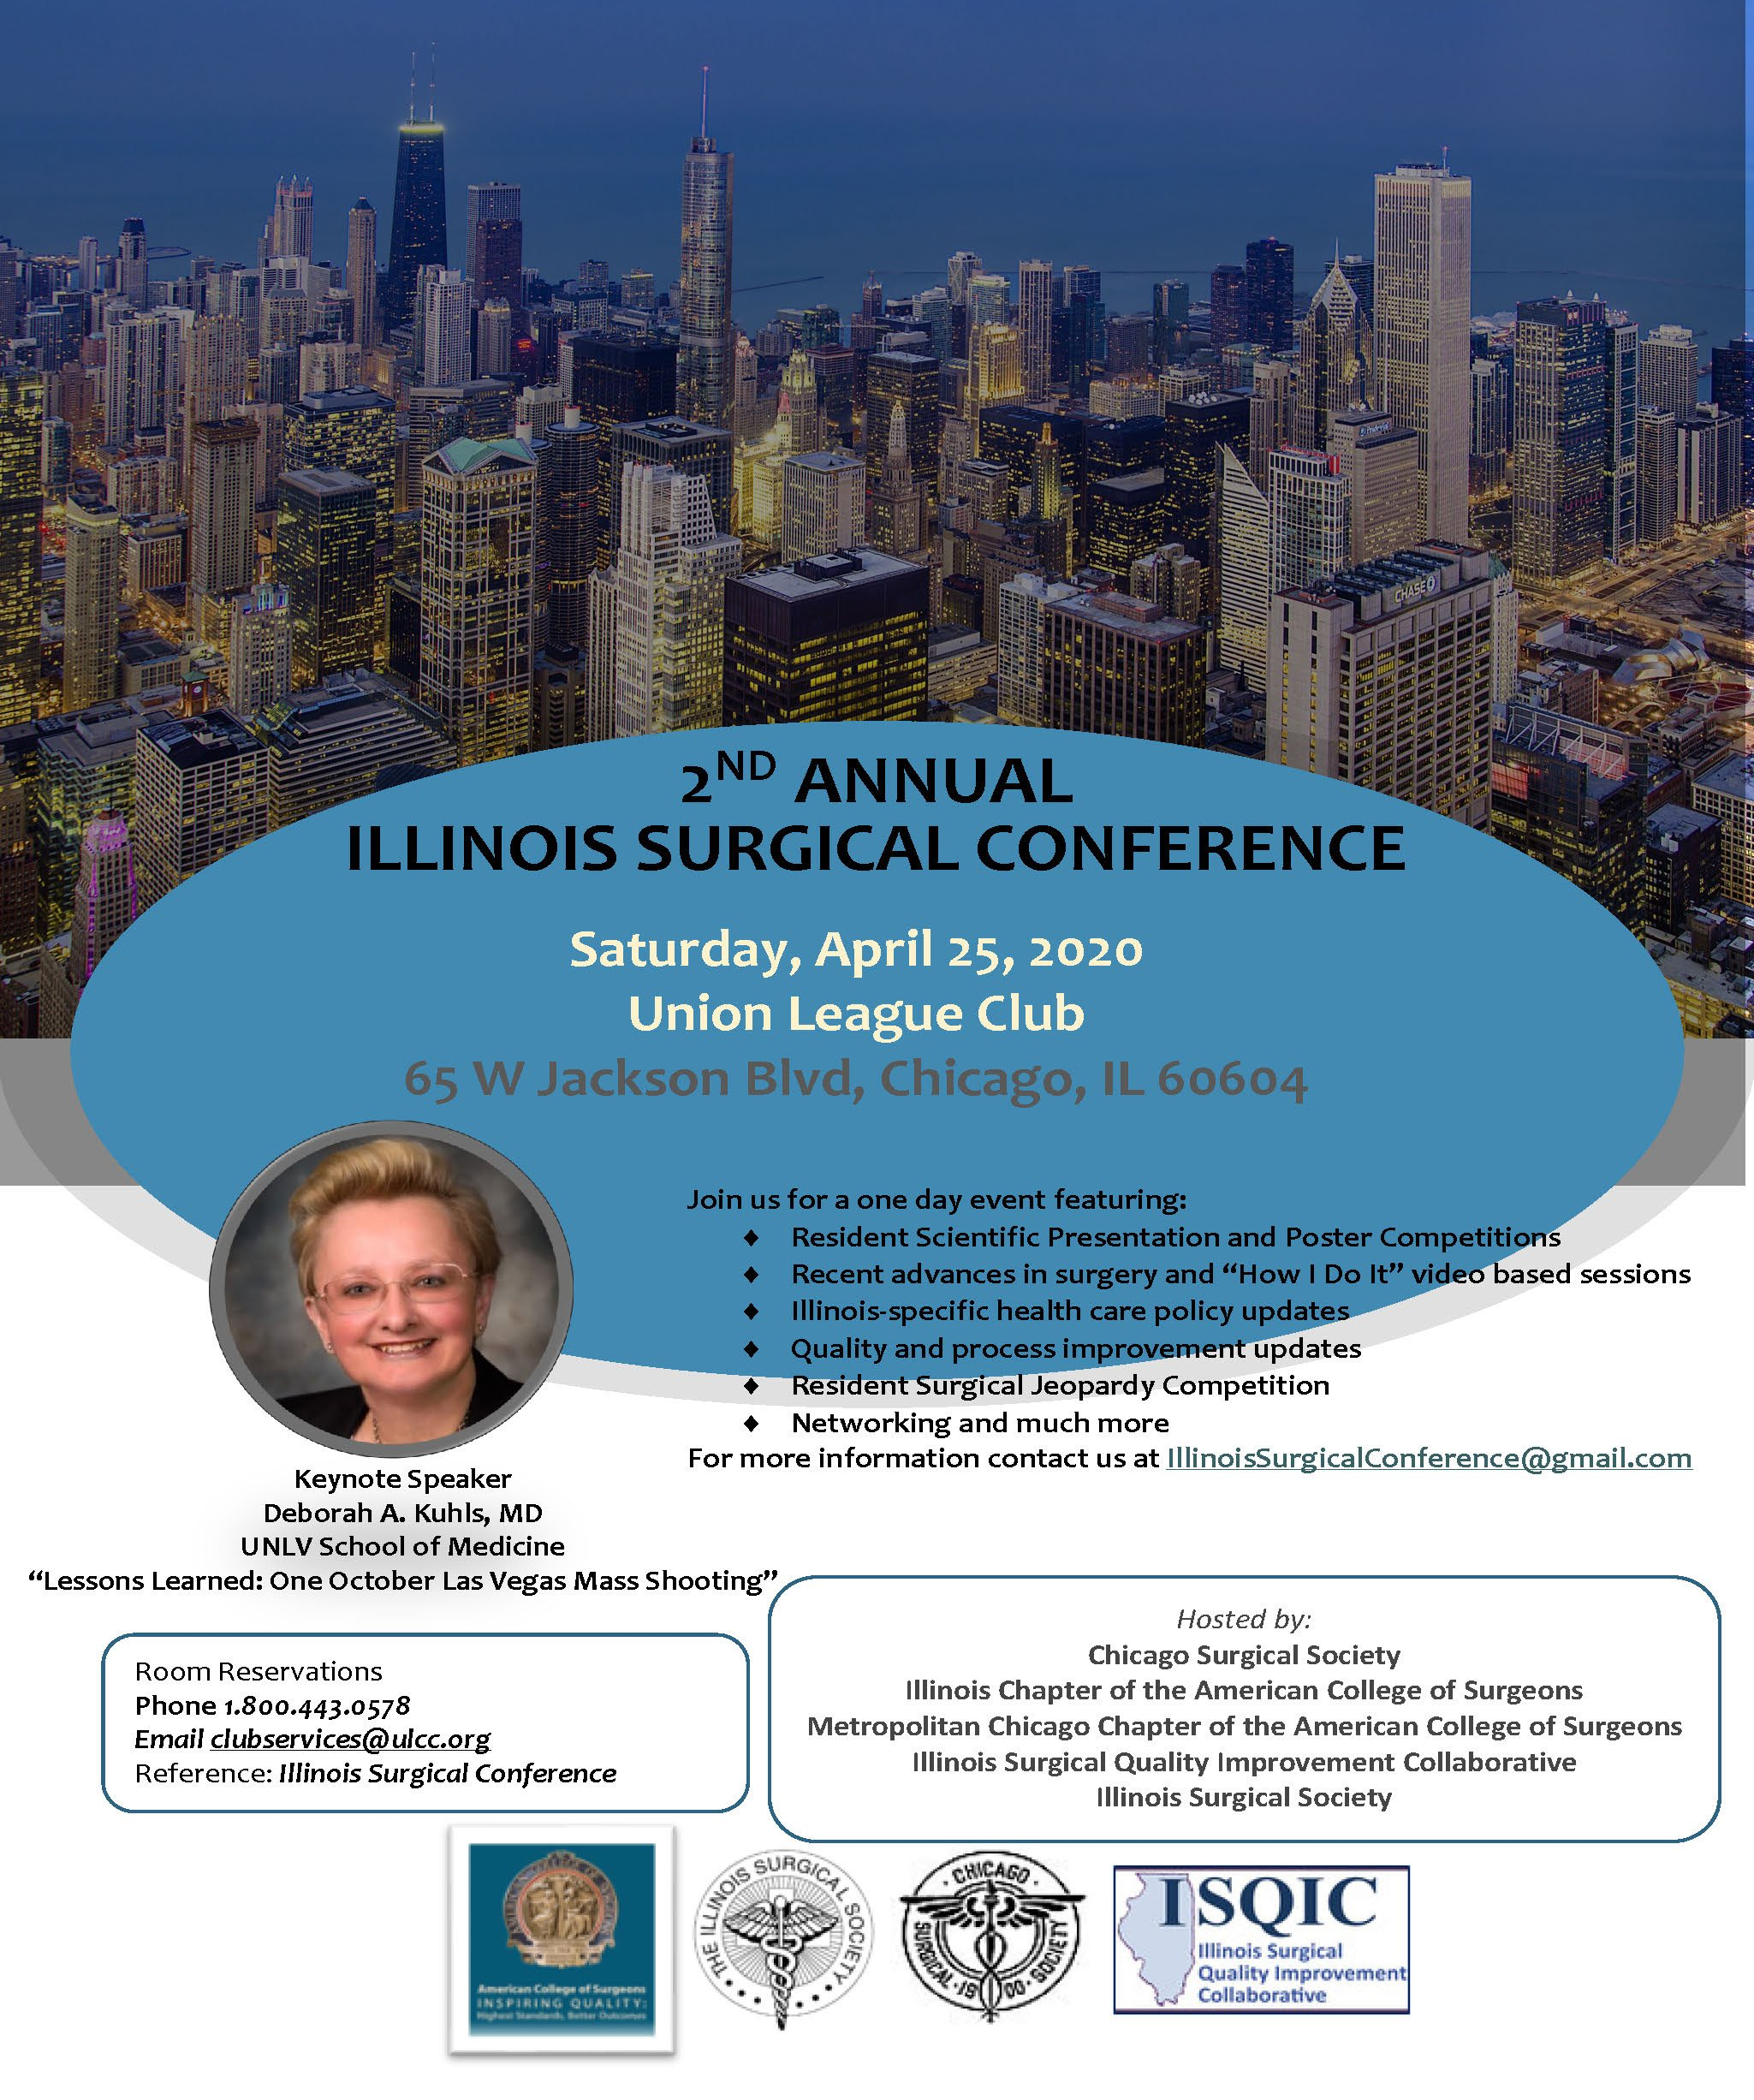 2nd Annual Illinois Surgical Conference